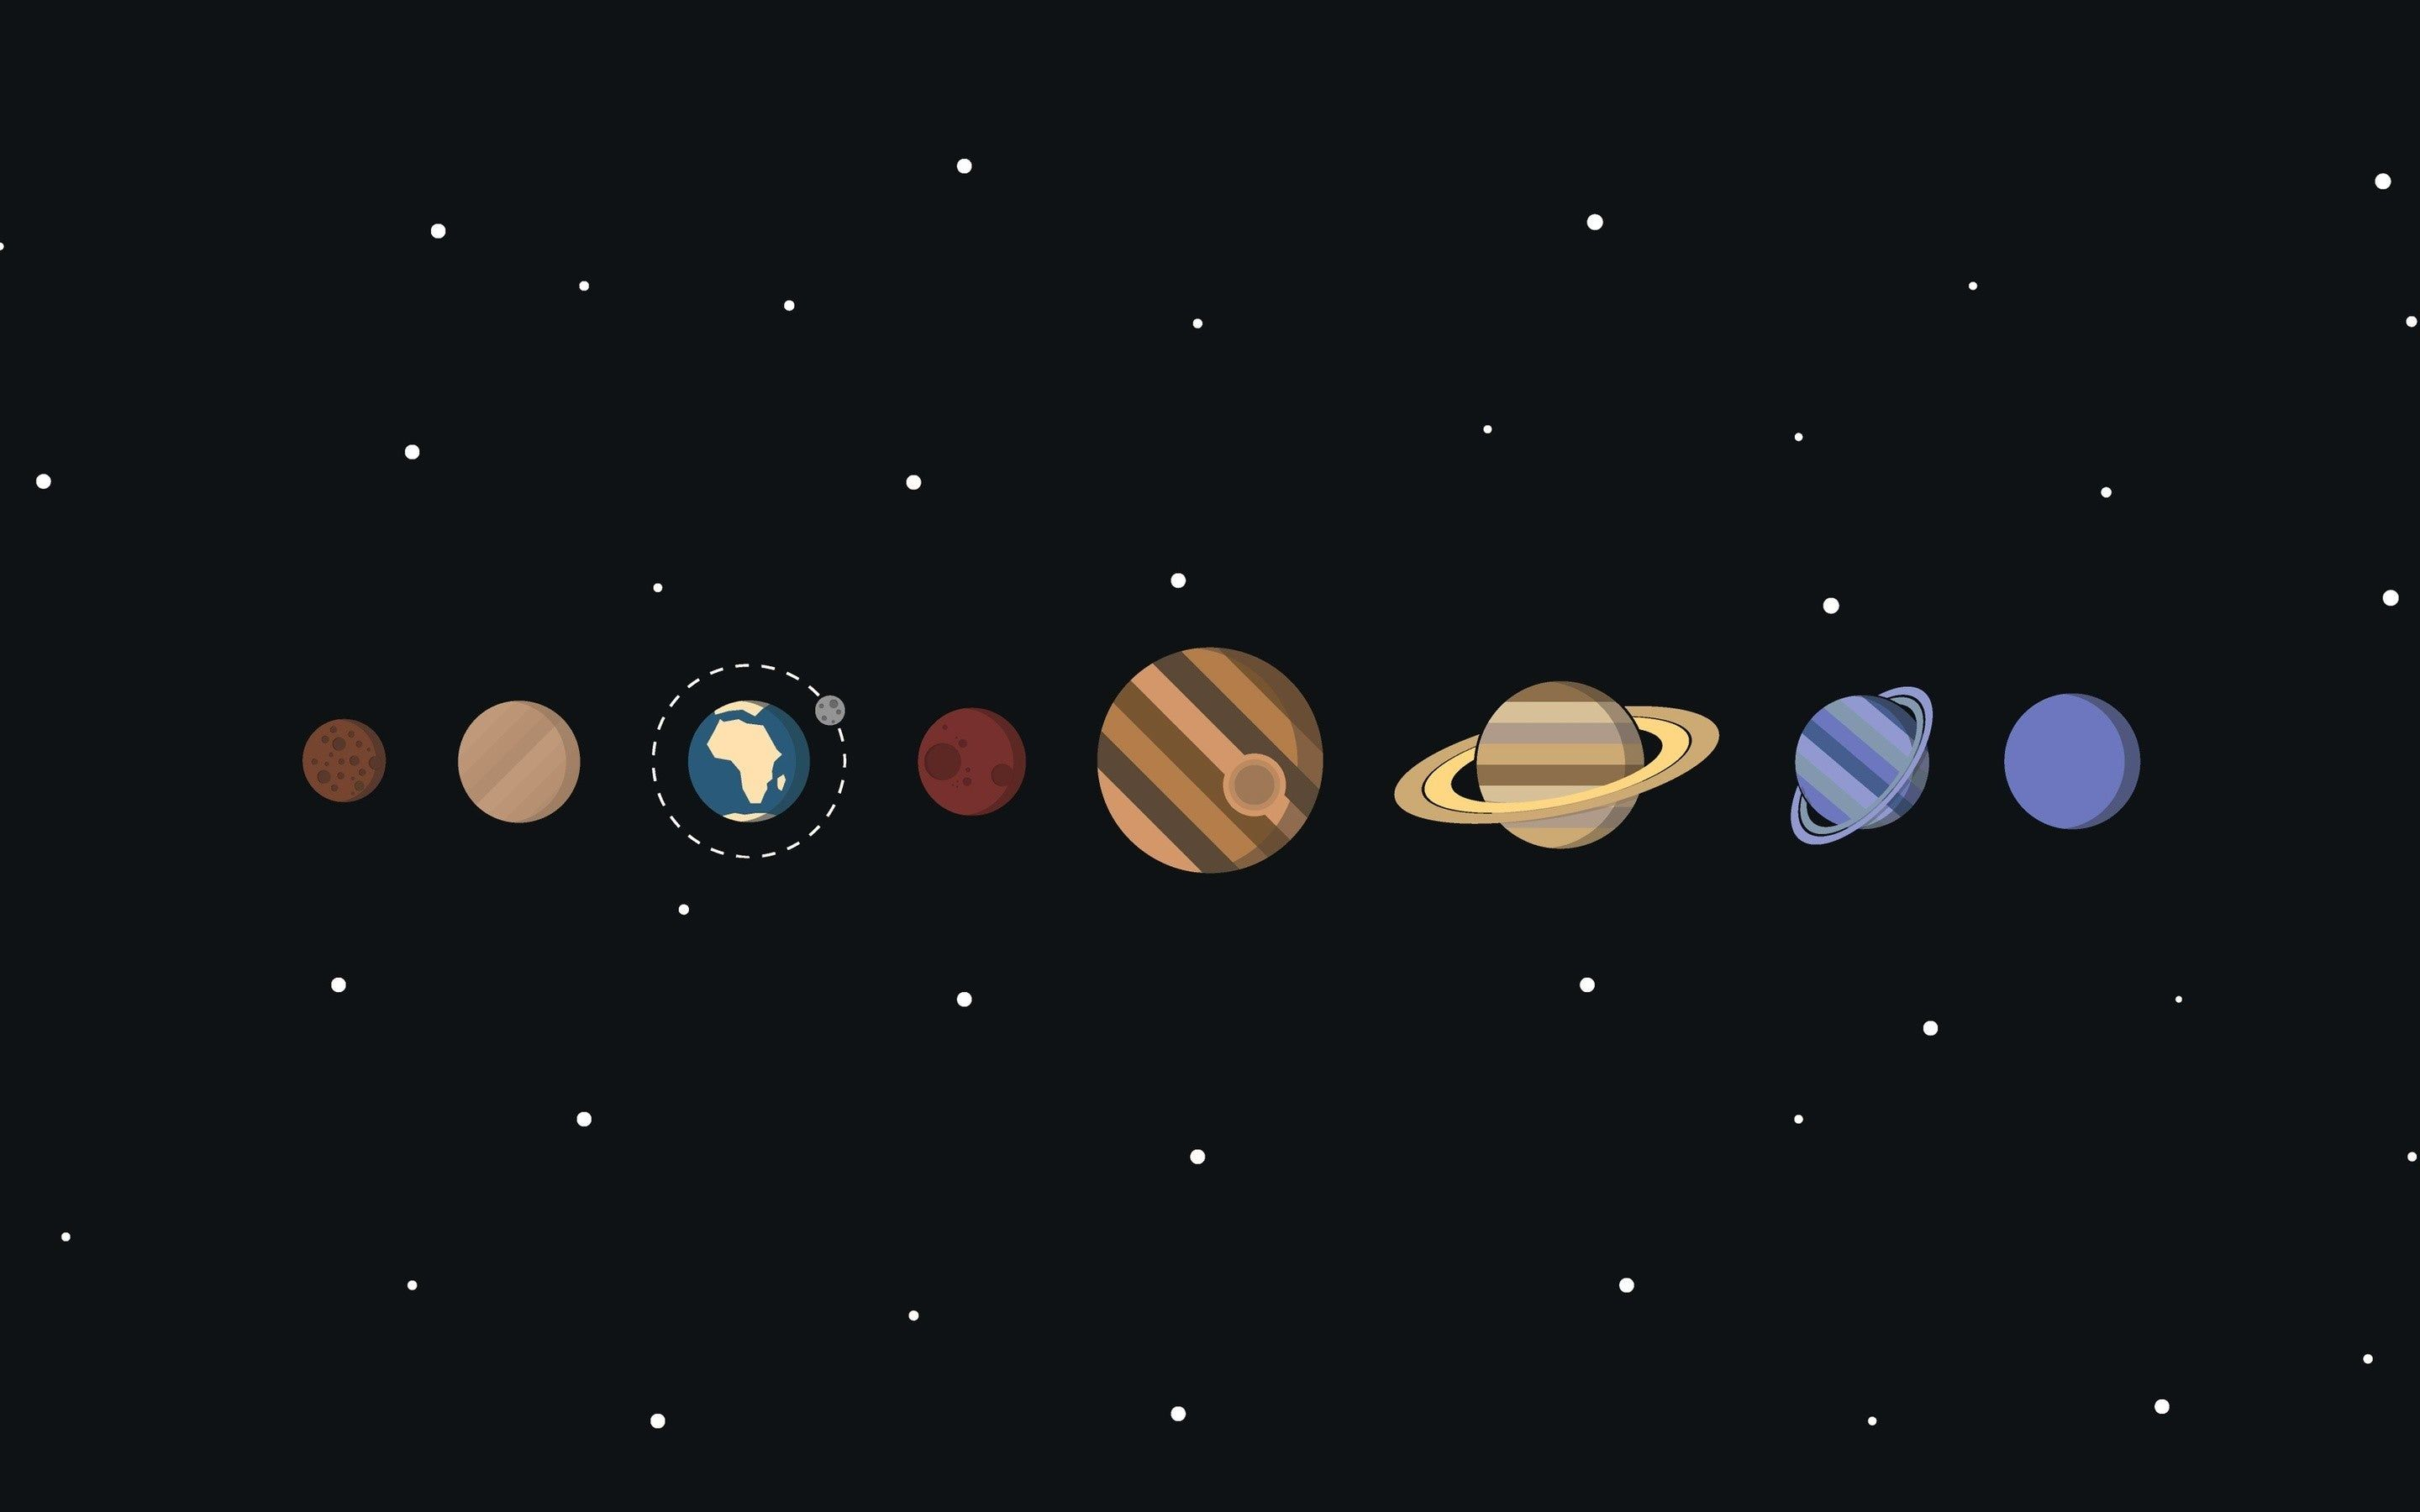 Minimal Solar System Hd Wallpaper System Wallpaper Desktop Wallpaper Art Computer Wallpaper Desktop Wallpapers